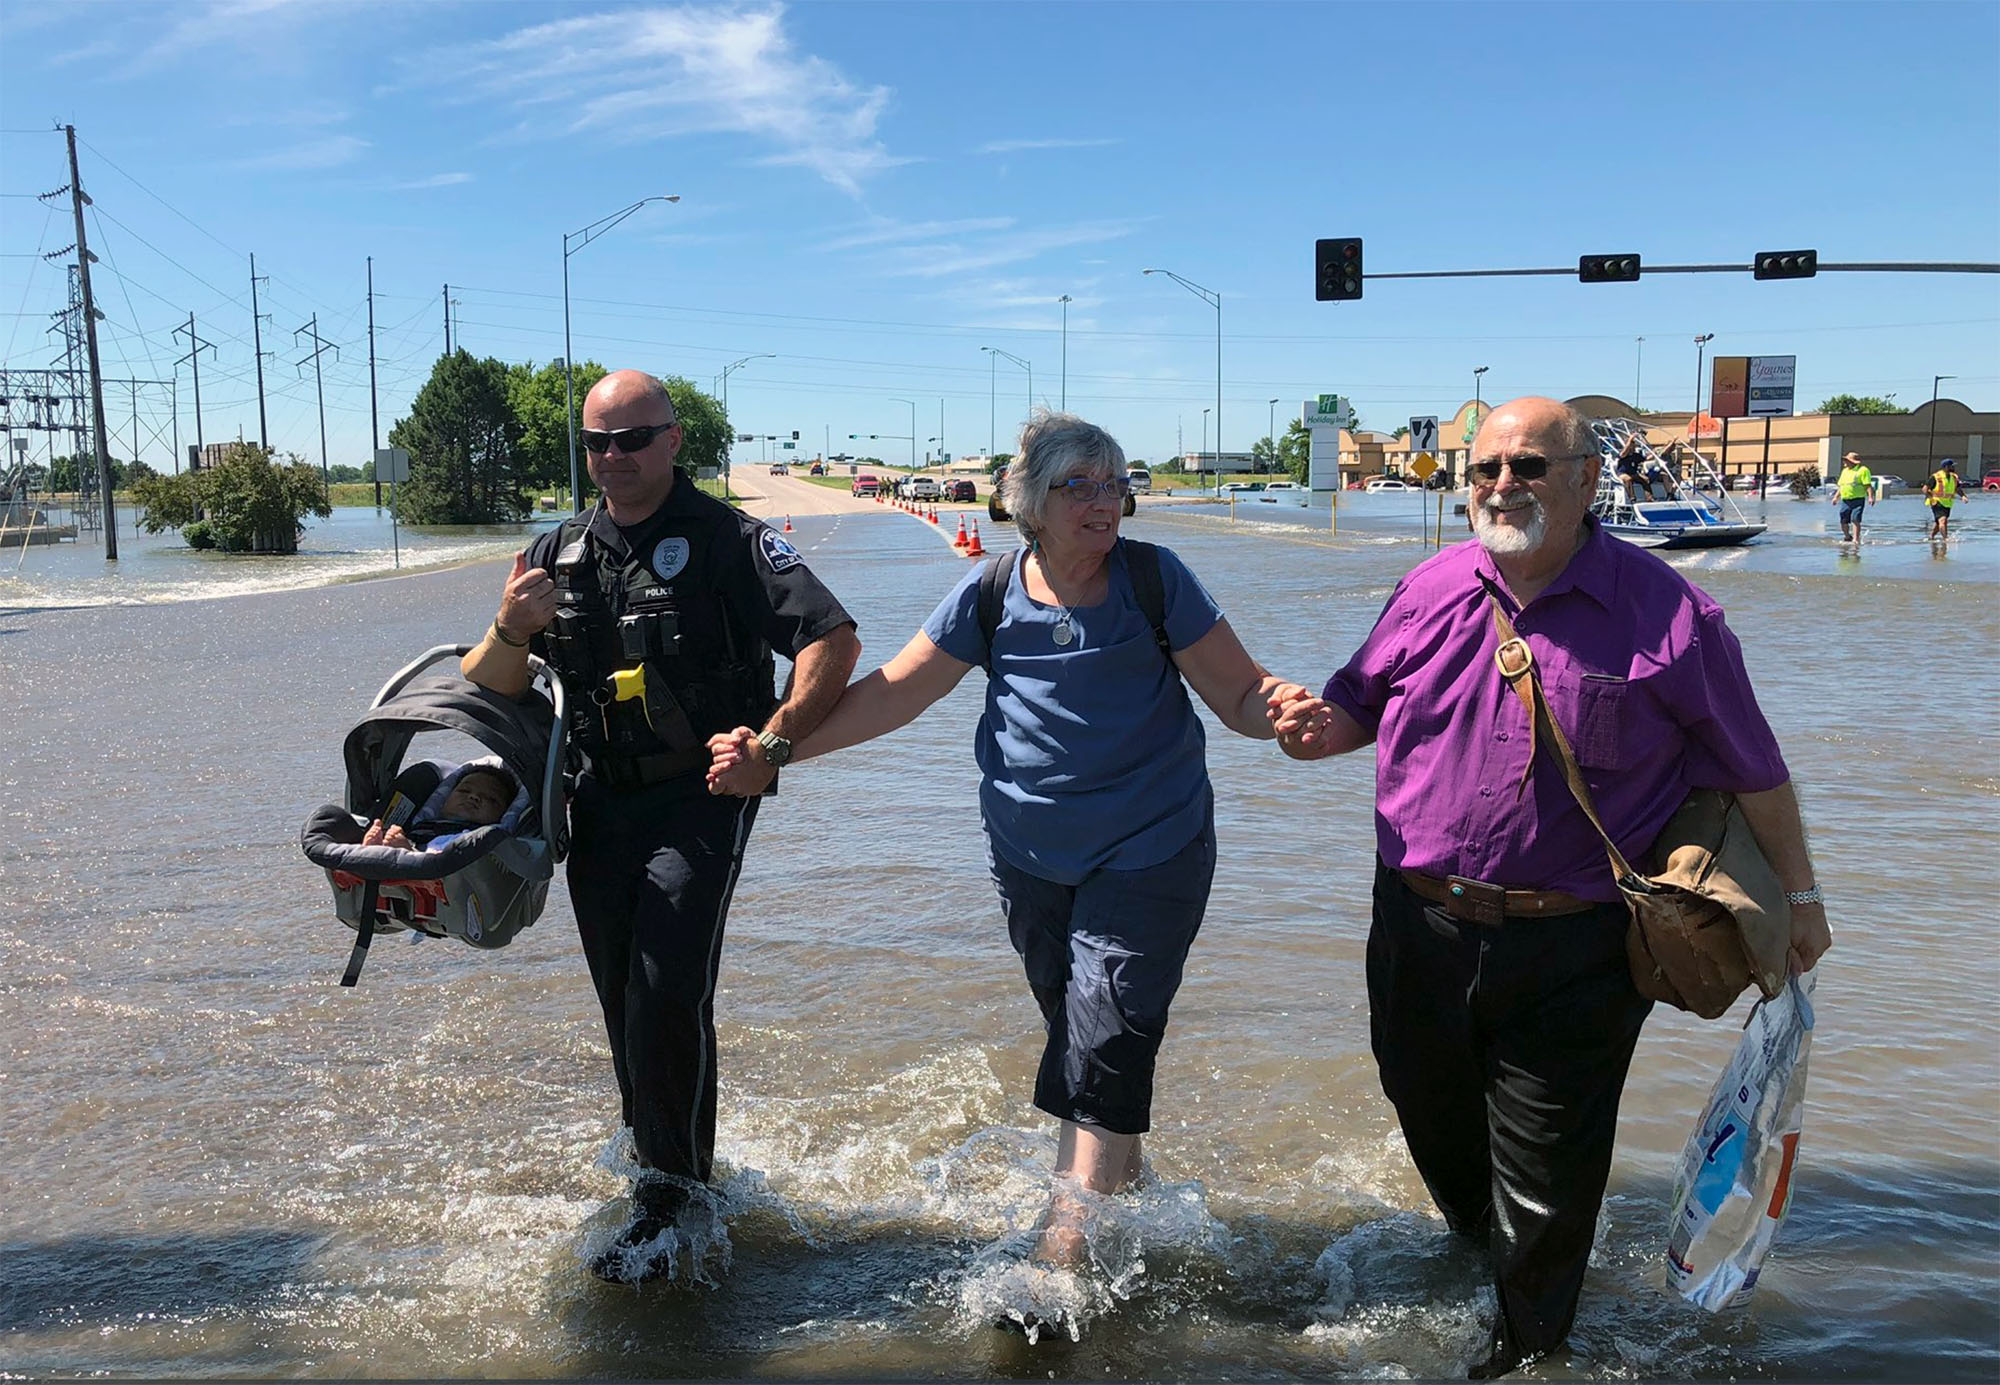 Kearney Police Officer Derek Payton assists Leslye and Terry Taylor of Pueblo, Colorado, and their 3-month-old grandson as they walk through the floodwater Tuesday after evacuating a local hotel. (Photo courtesy of Kearney Police Department)